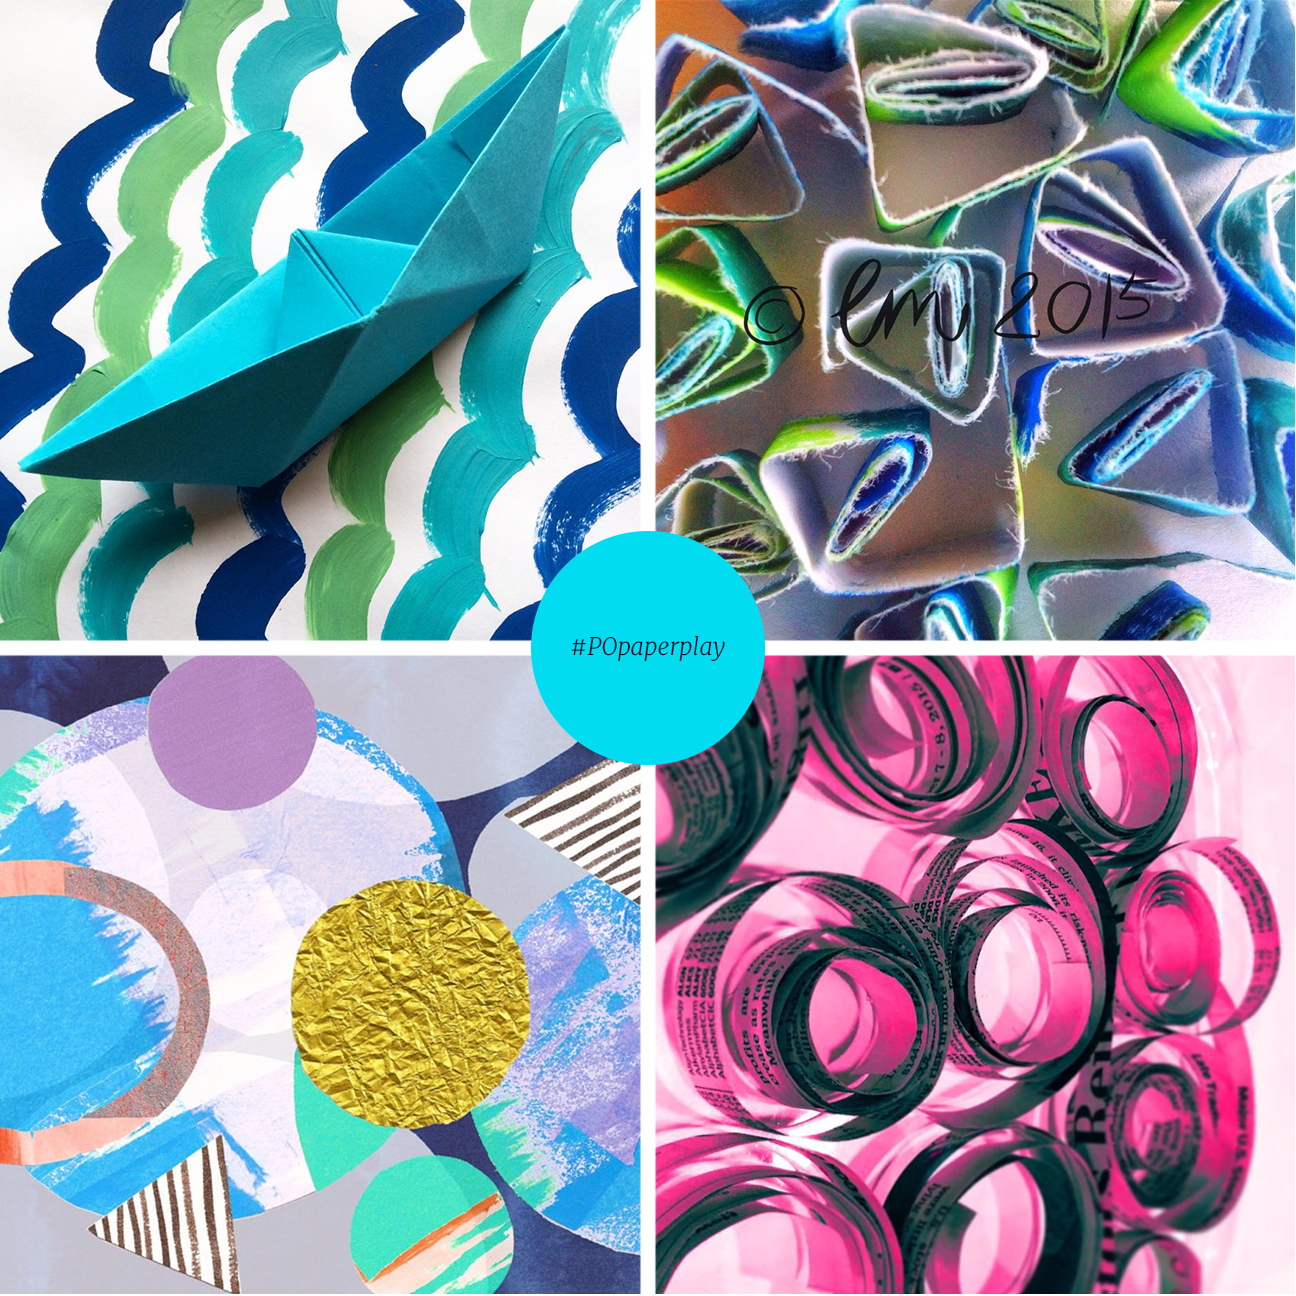 This #POpaperplay collage is featured in my post over at   Pattern Observer  . Clockwise from upper left: @neekienoo; @esther_emma; @chris_coco_olson; @elephantandrose